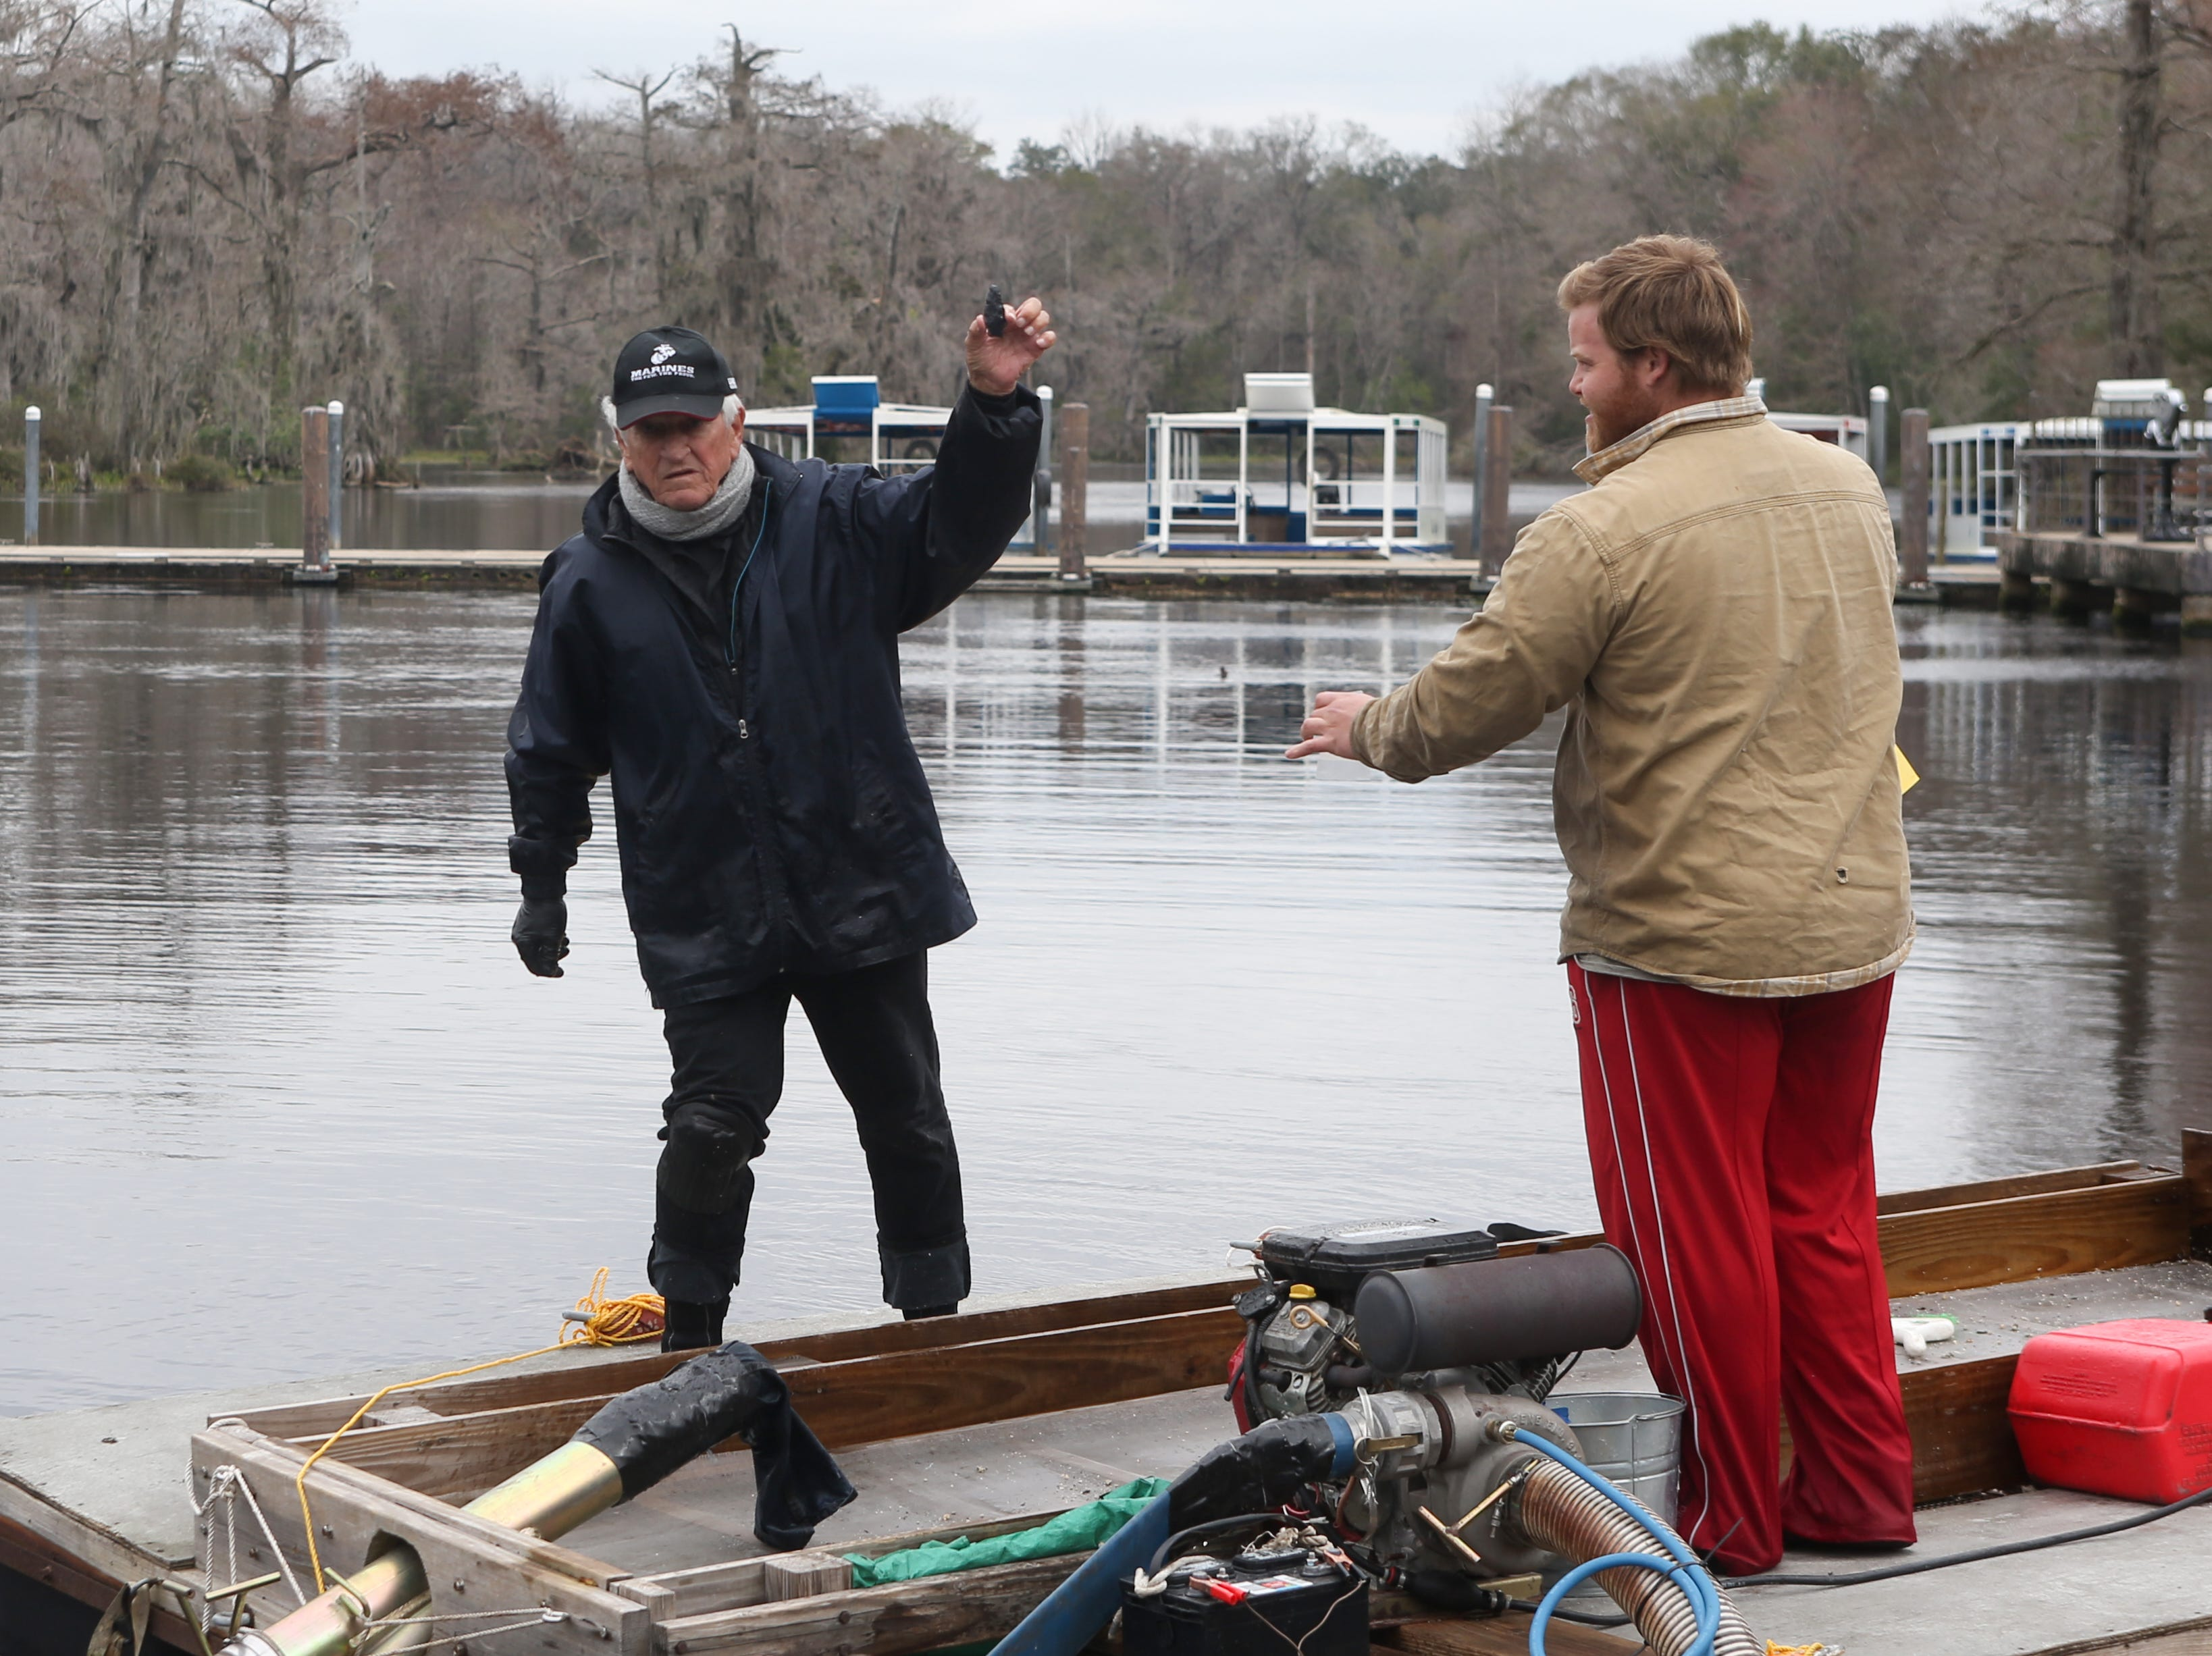 Volunteer Ken Beattie holds up an arrowhead he found in the water dredged up from the bottom of the Wakulla River as researchers scuba dive down eight feet to observe the remains of a mastodon there Monday, Jan. 14, 2019.